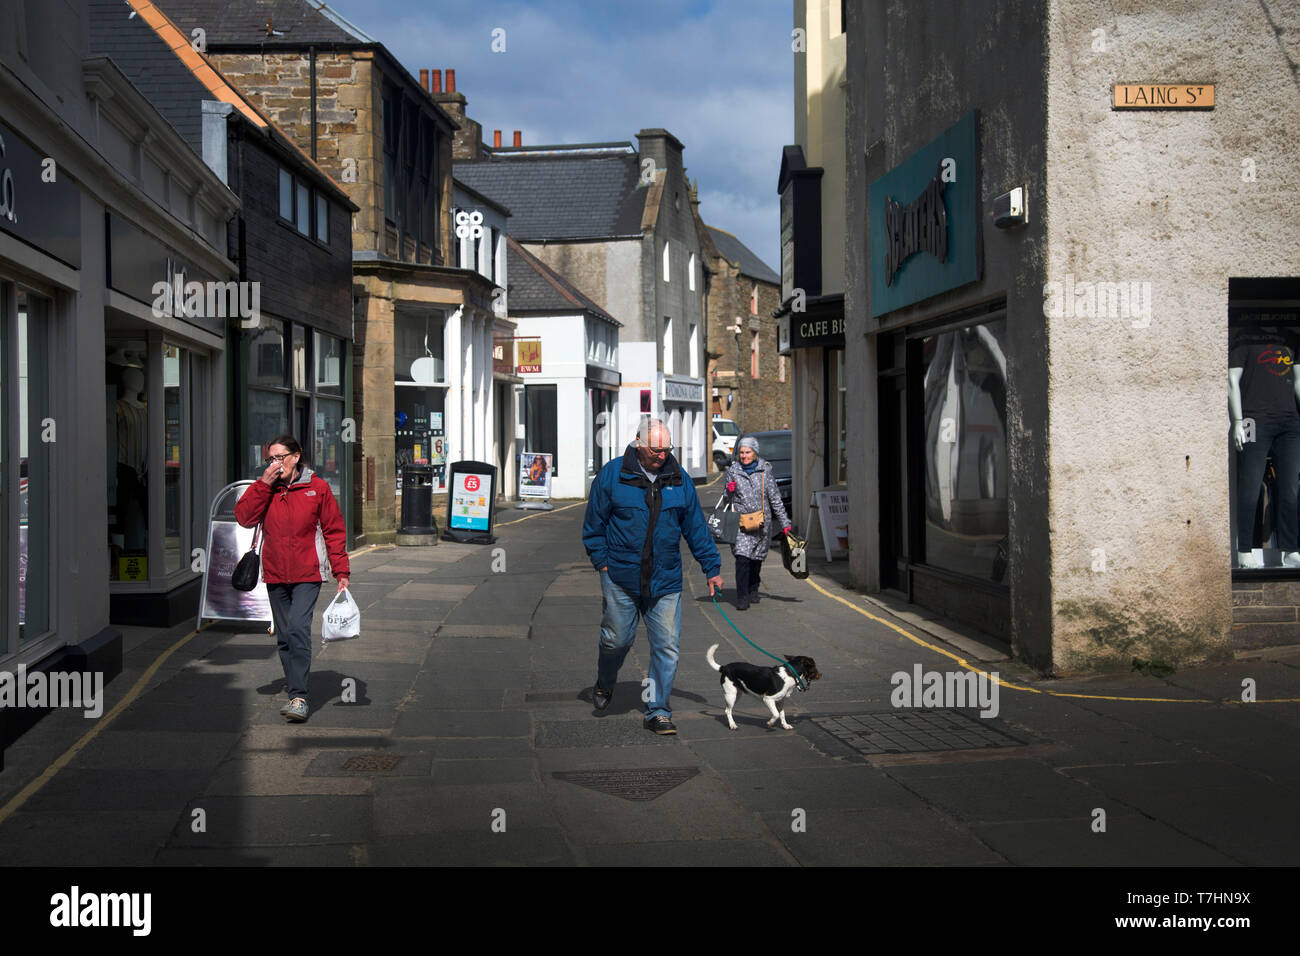 Evening on Laing Street, Kirkwall, Orkney Islands - Stock Image